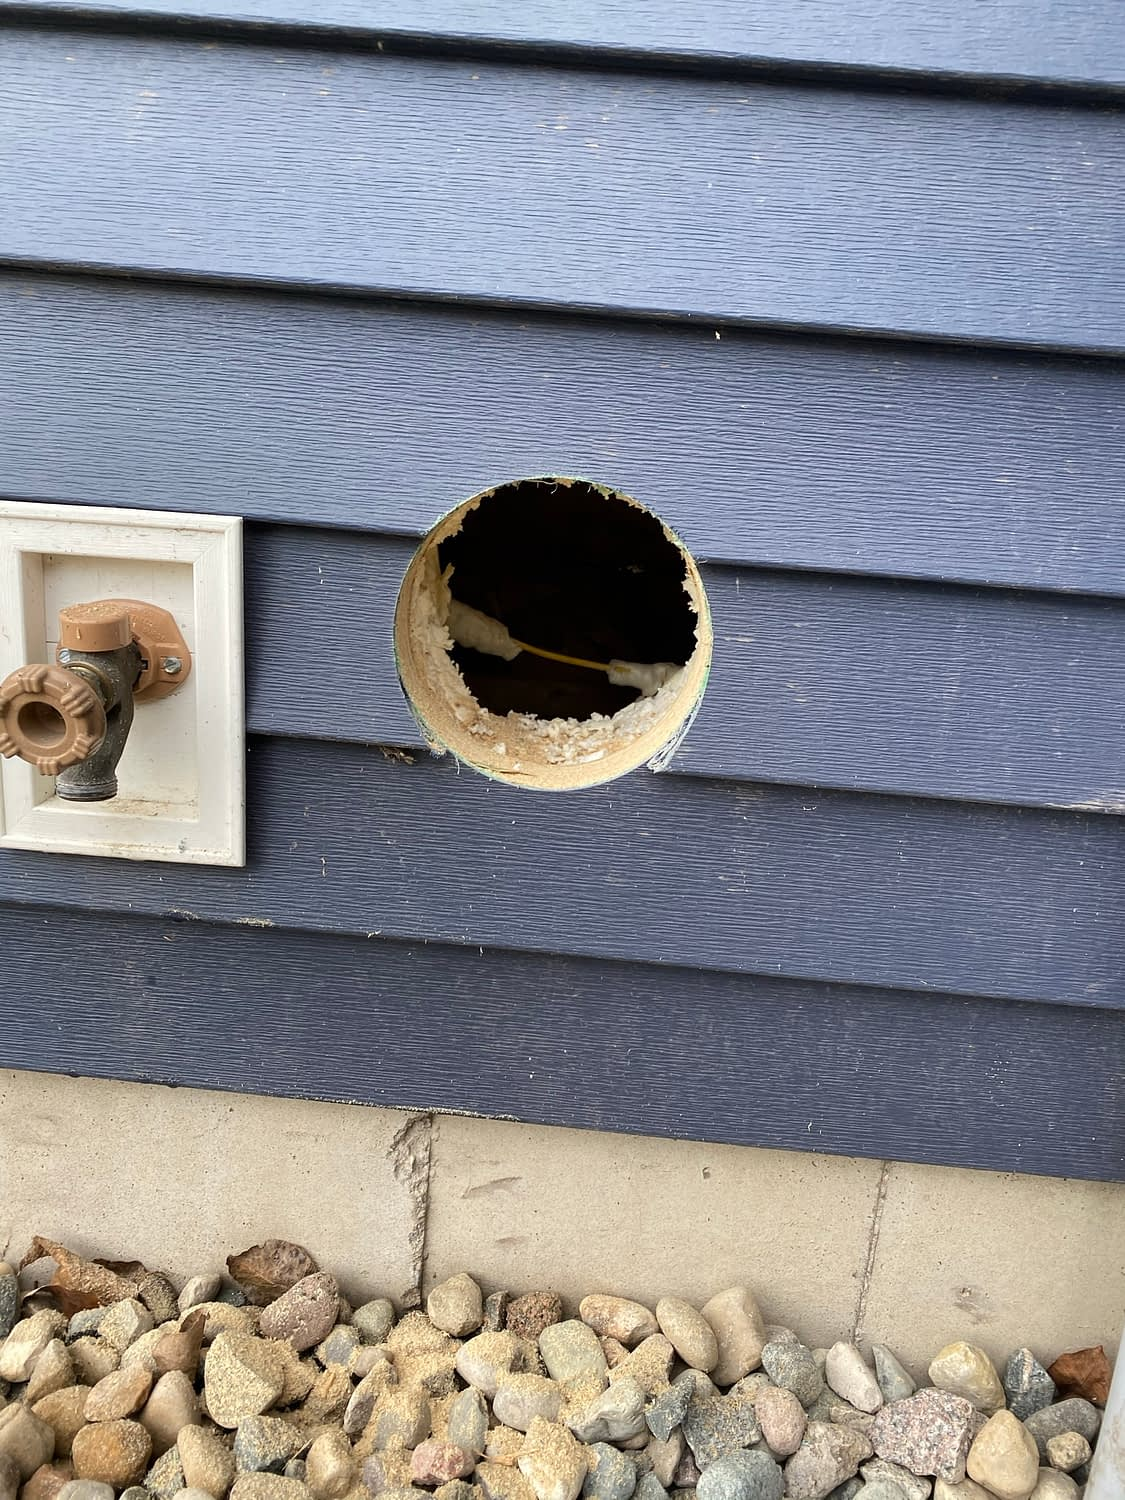 Exterior Wall Exhaust Vent 6-inch hole